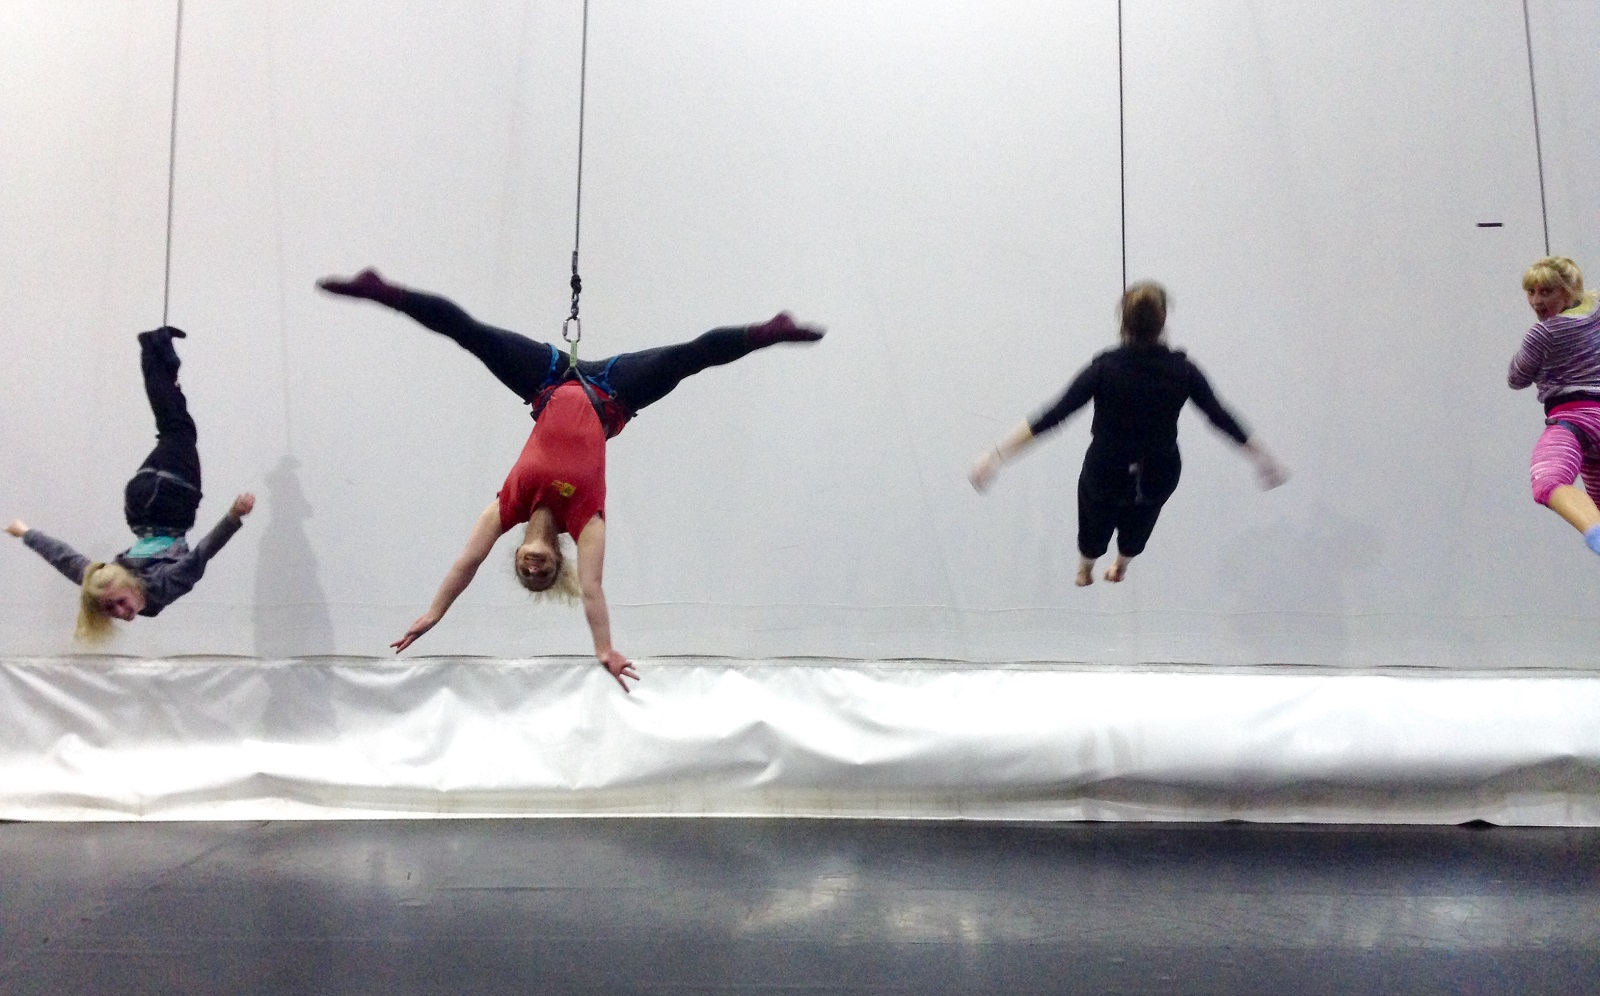 Wired Aerial Theatre: Taster Day at The Higher Space